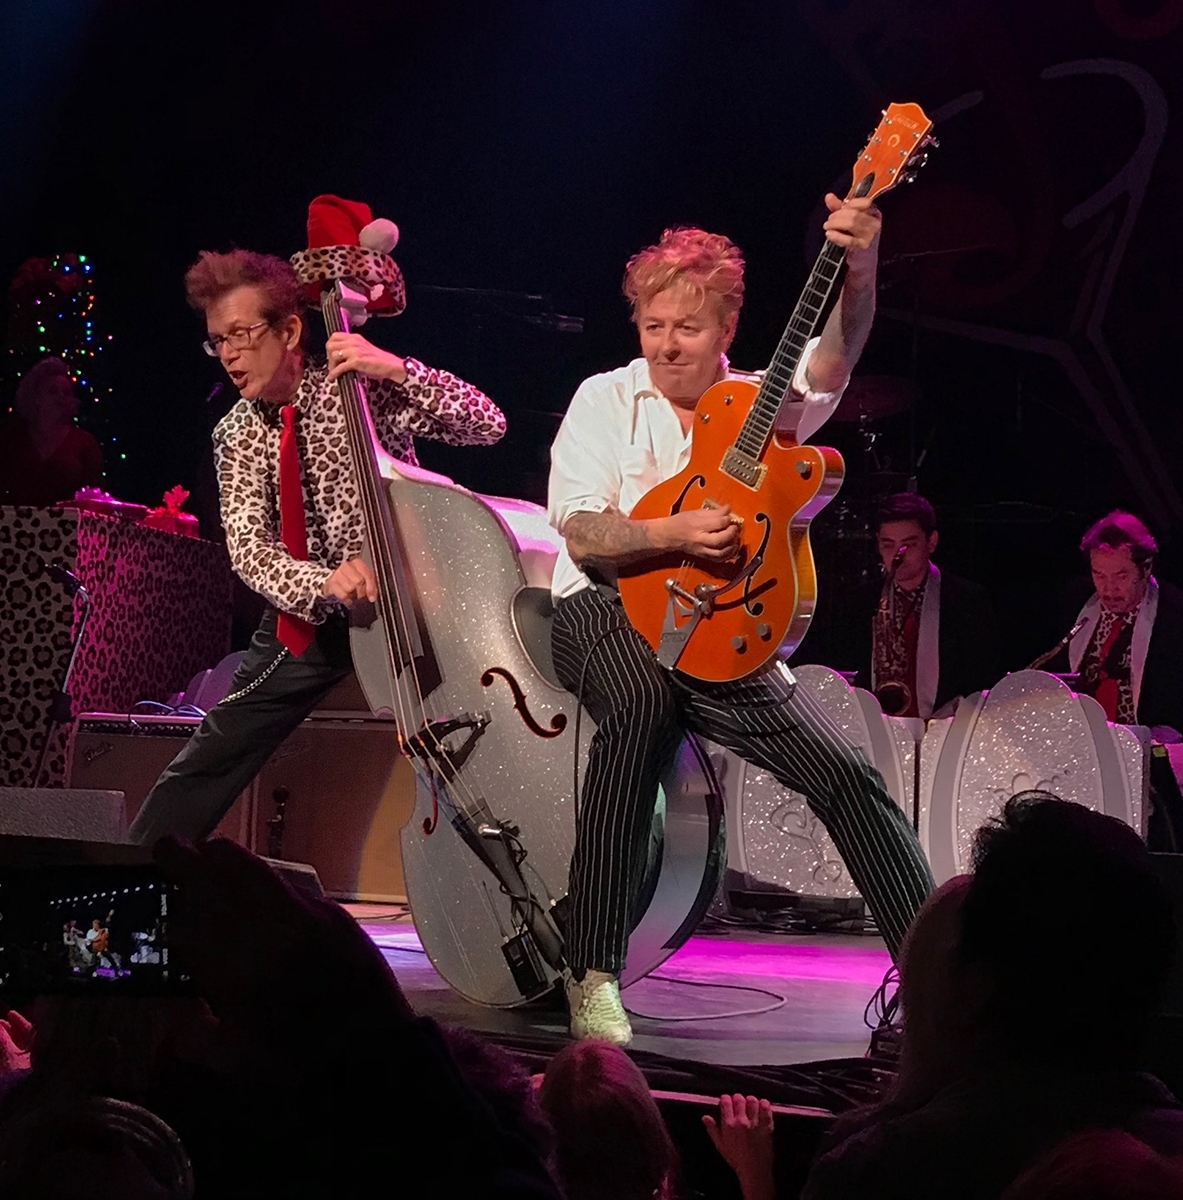 'Brian Setzer sits on the Bass while Rocking the Warfield' (JA 1 Place) by Stephen Busch - CC